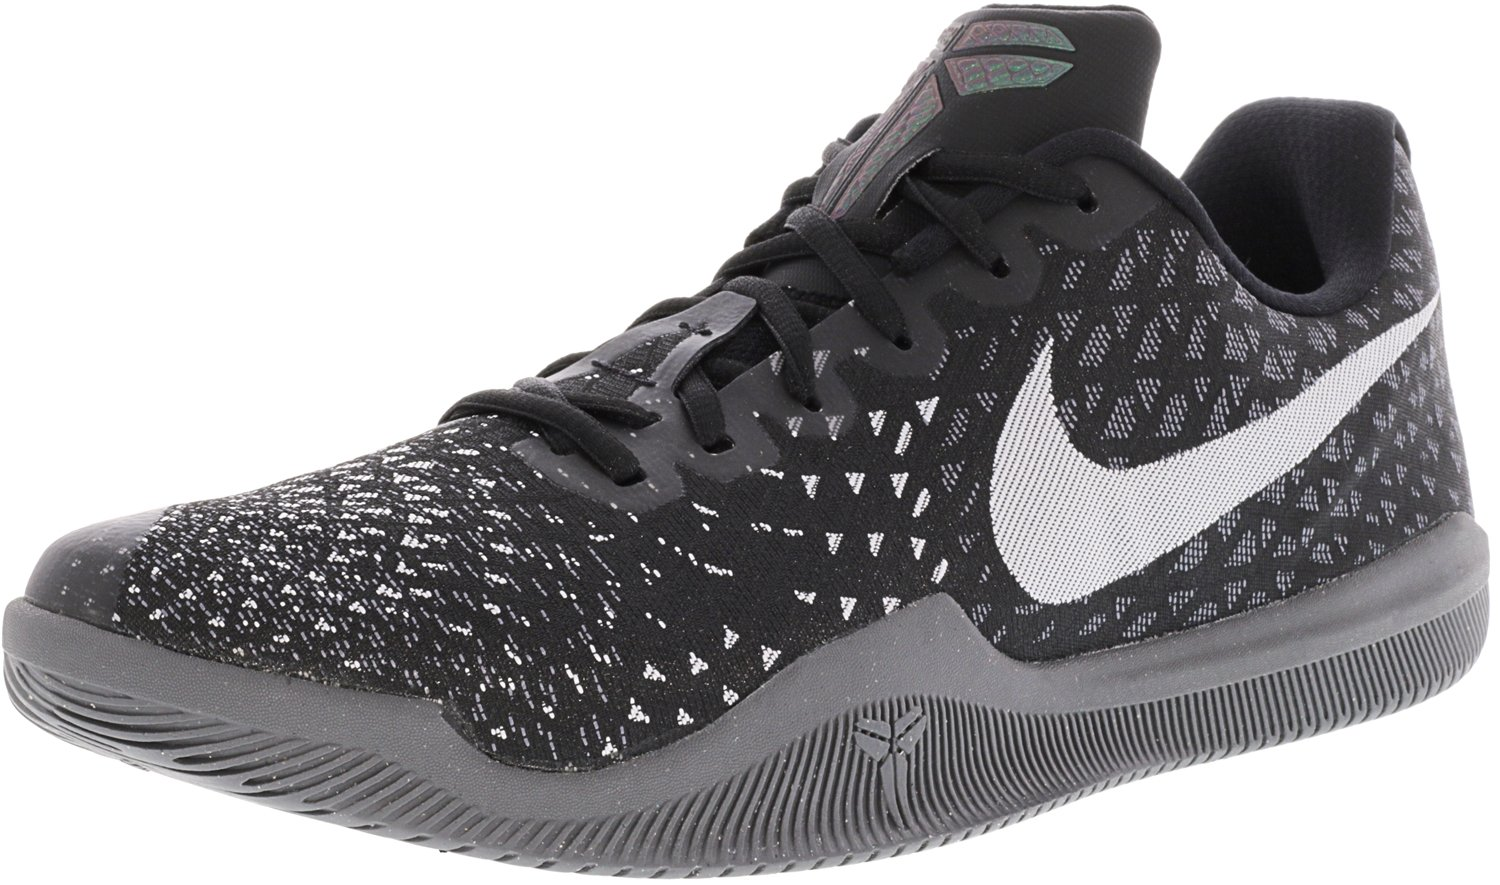 ea4821ba0267 Galleon - NIKE Kobe Mamba Instinct Mens Basketball Shoes (11.5 D(M) US)